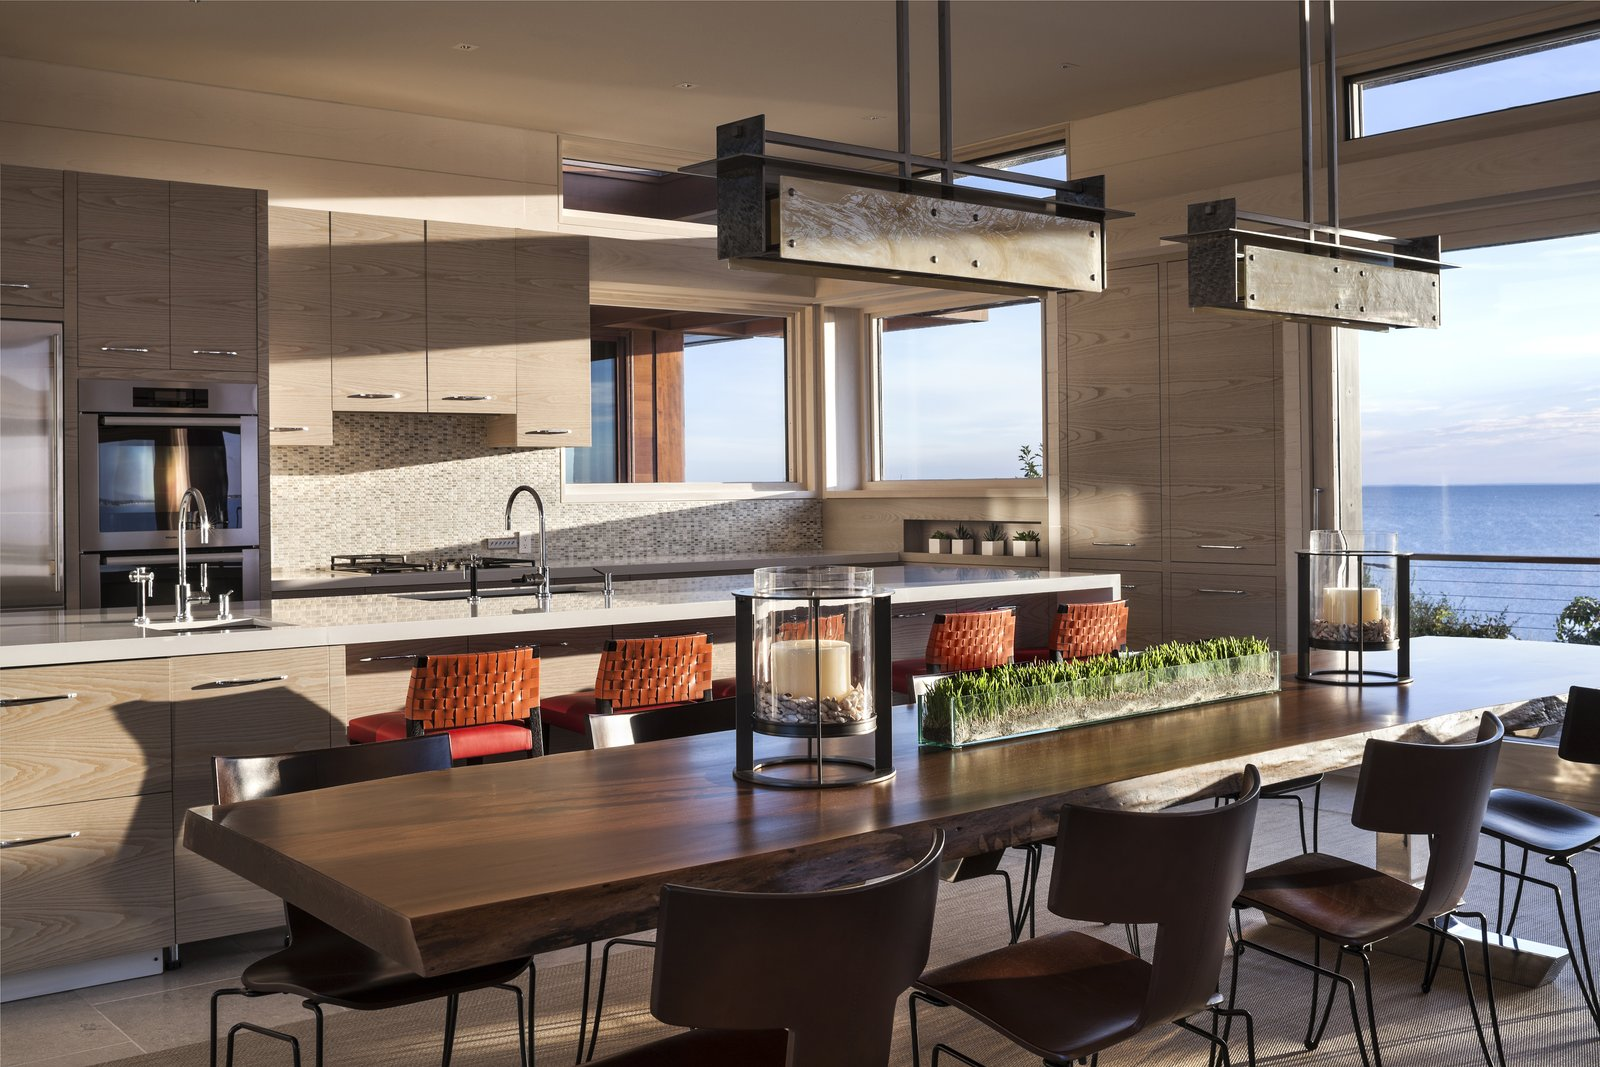 The open layout seamlessly connects kitchen, dining, and living spaces.  The Cape